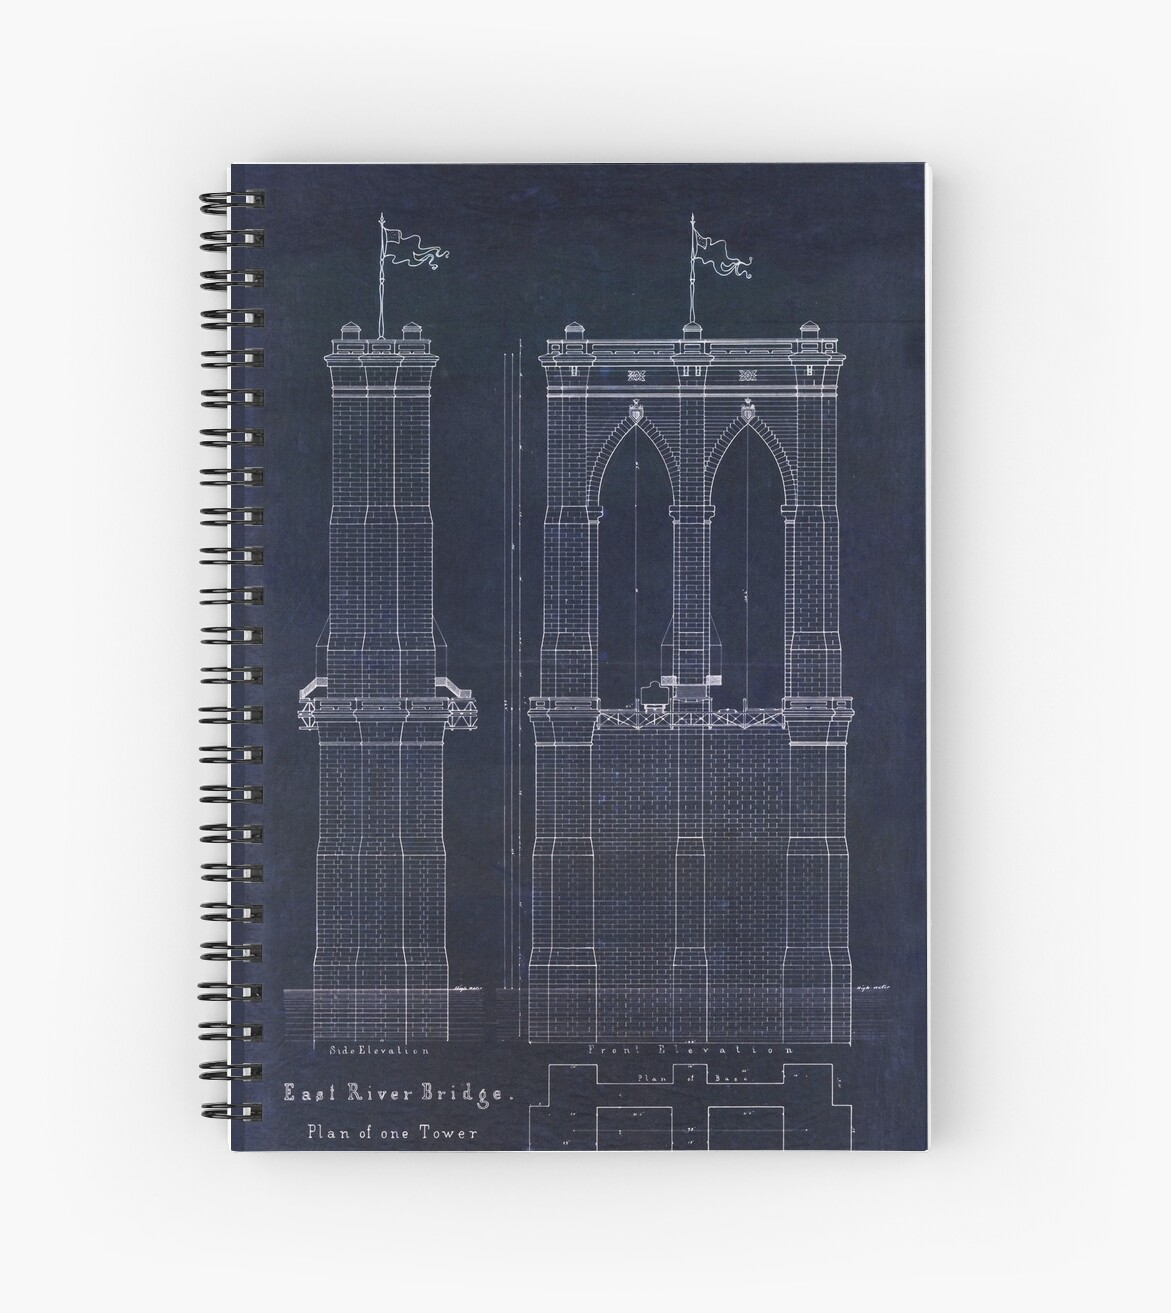 Antique blueprint of the brooklyn bridge east river bridge antique blueprint of the brooklyn bridge east river bridge by glimmersmith malvernweather Image collections